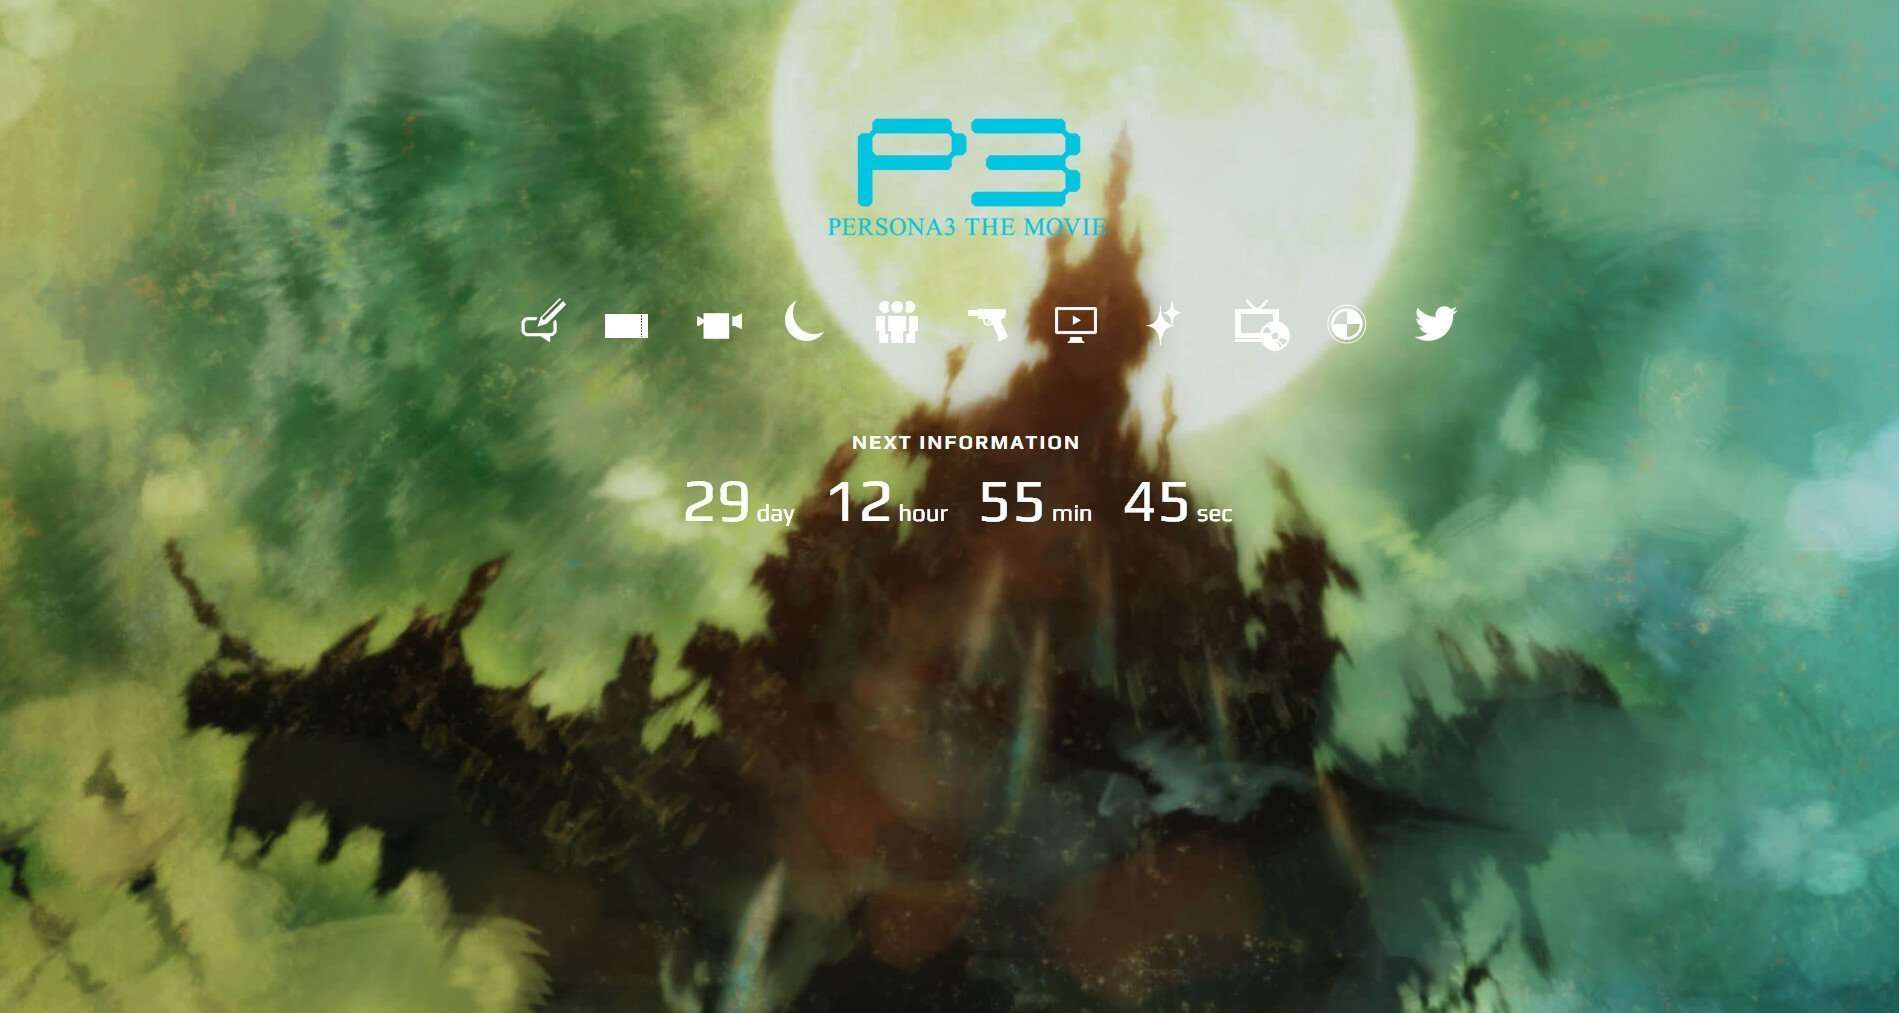 Persona 3 The Movie official website countdown for P3M#4.